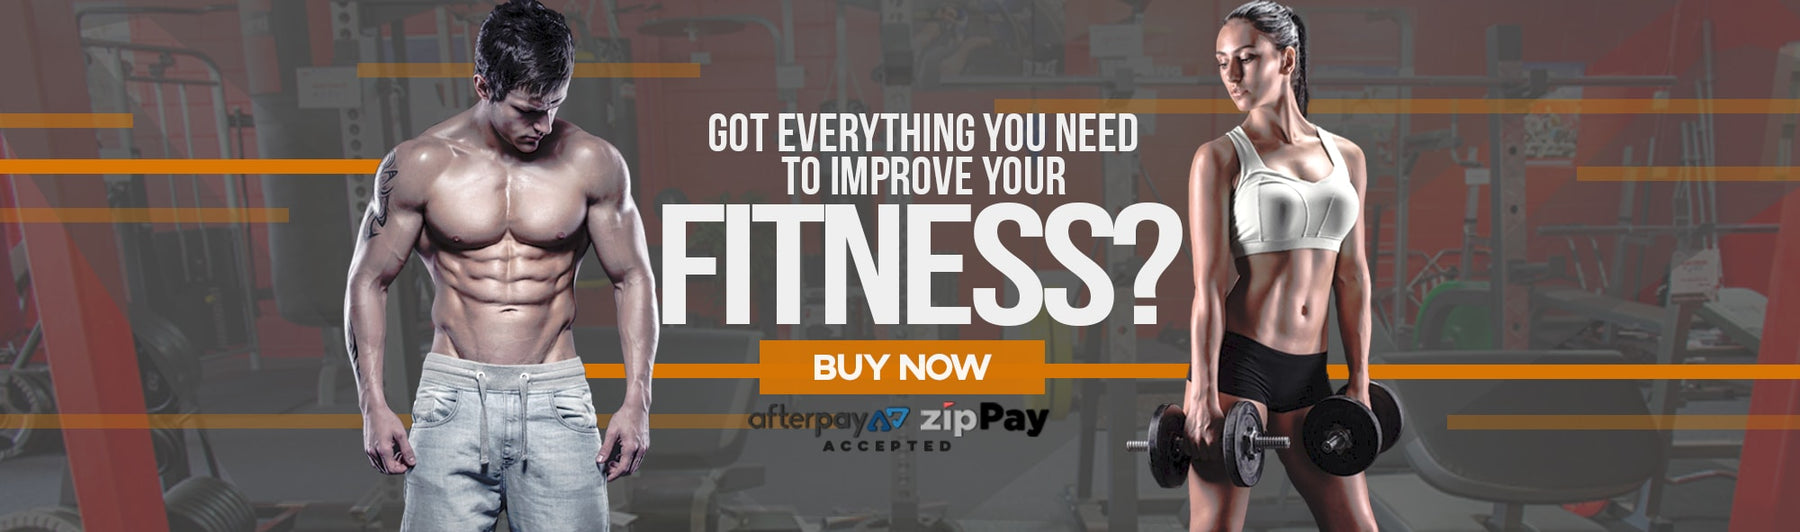 Gym & Fitness - Save up to 50% Off On New Gym Equipment